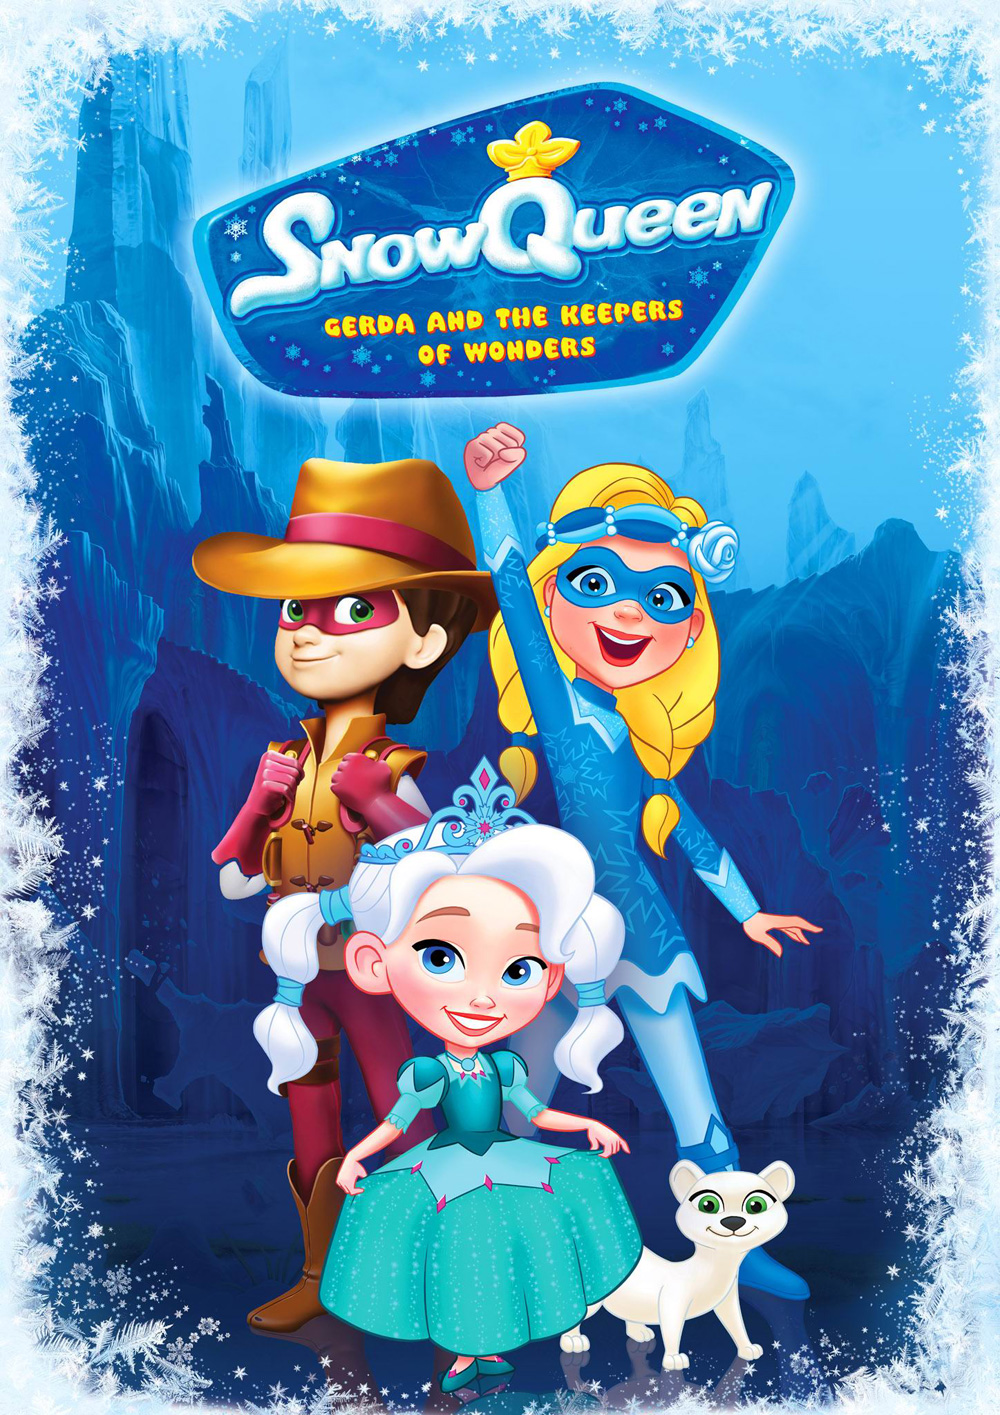 Snow Queen: Gerda and the Keepers of Wonders